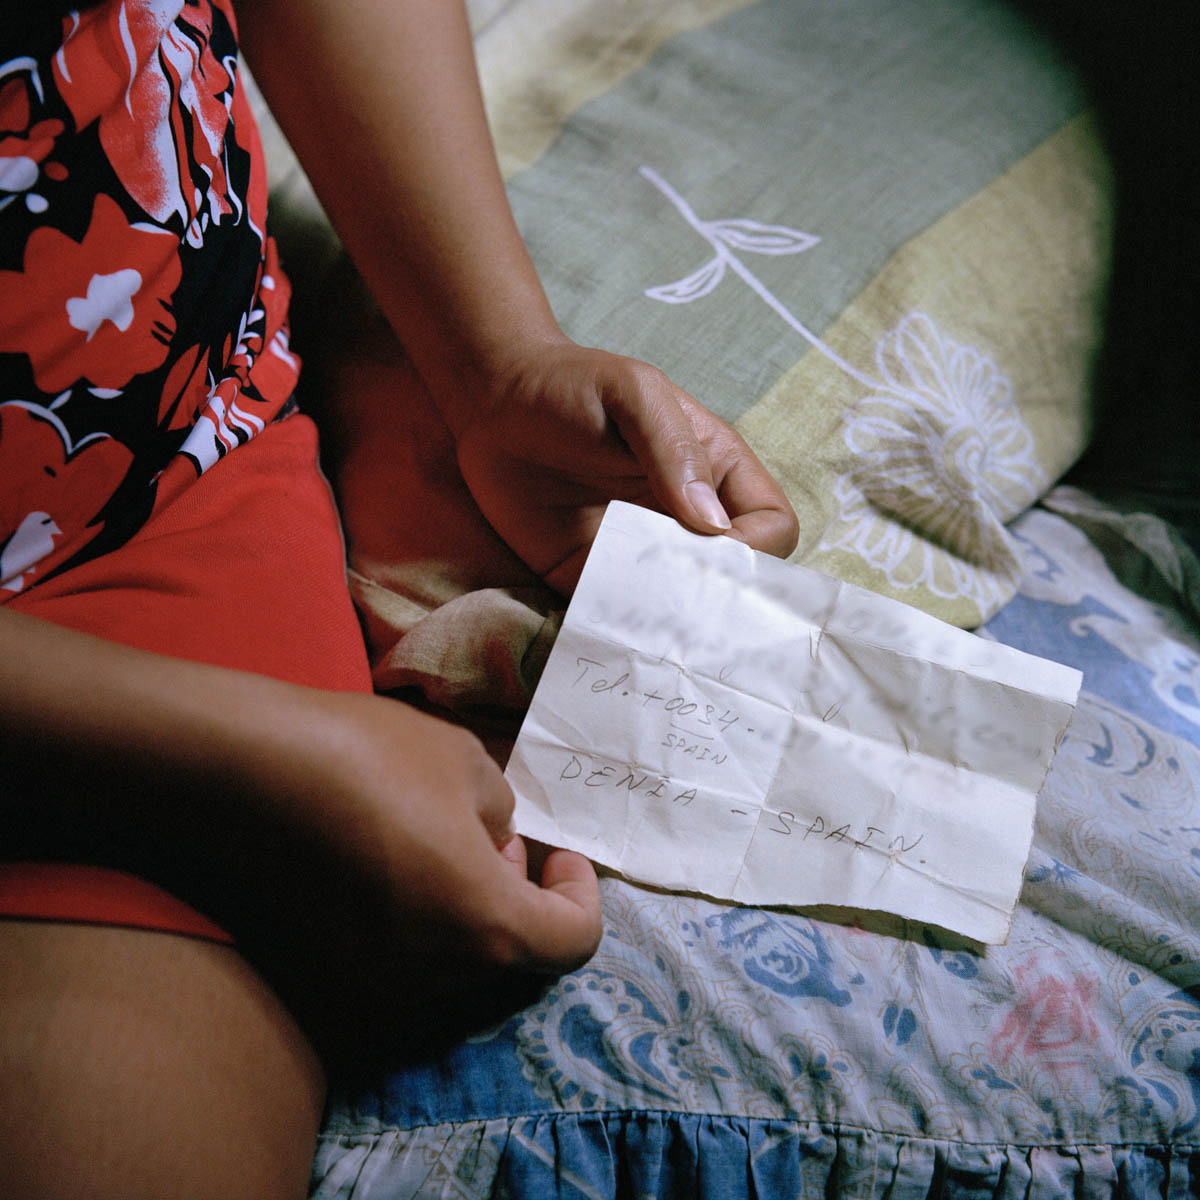 """Address - Antonia, 26, holds the address of her daughter's father. He is around 60 years old, comes from Spain and spent one week in Angeles City as a """"tourist"""". He does not know about his fatherhood. Angeles City, Philippines, August 2014. - Copyright © © S. Borcard - N. Metraux - Angeles - Central Luzon - Philippines - <A href=""""https://maps.google.com/?ll=15.168055,120.586388&z=16"""" target=""""_blank"""">(Map Address)</A>"""